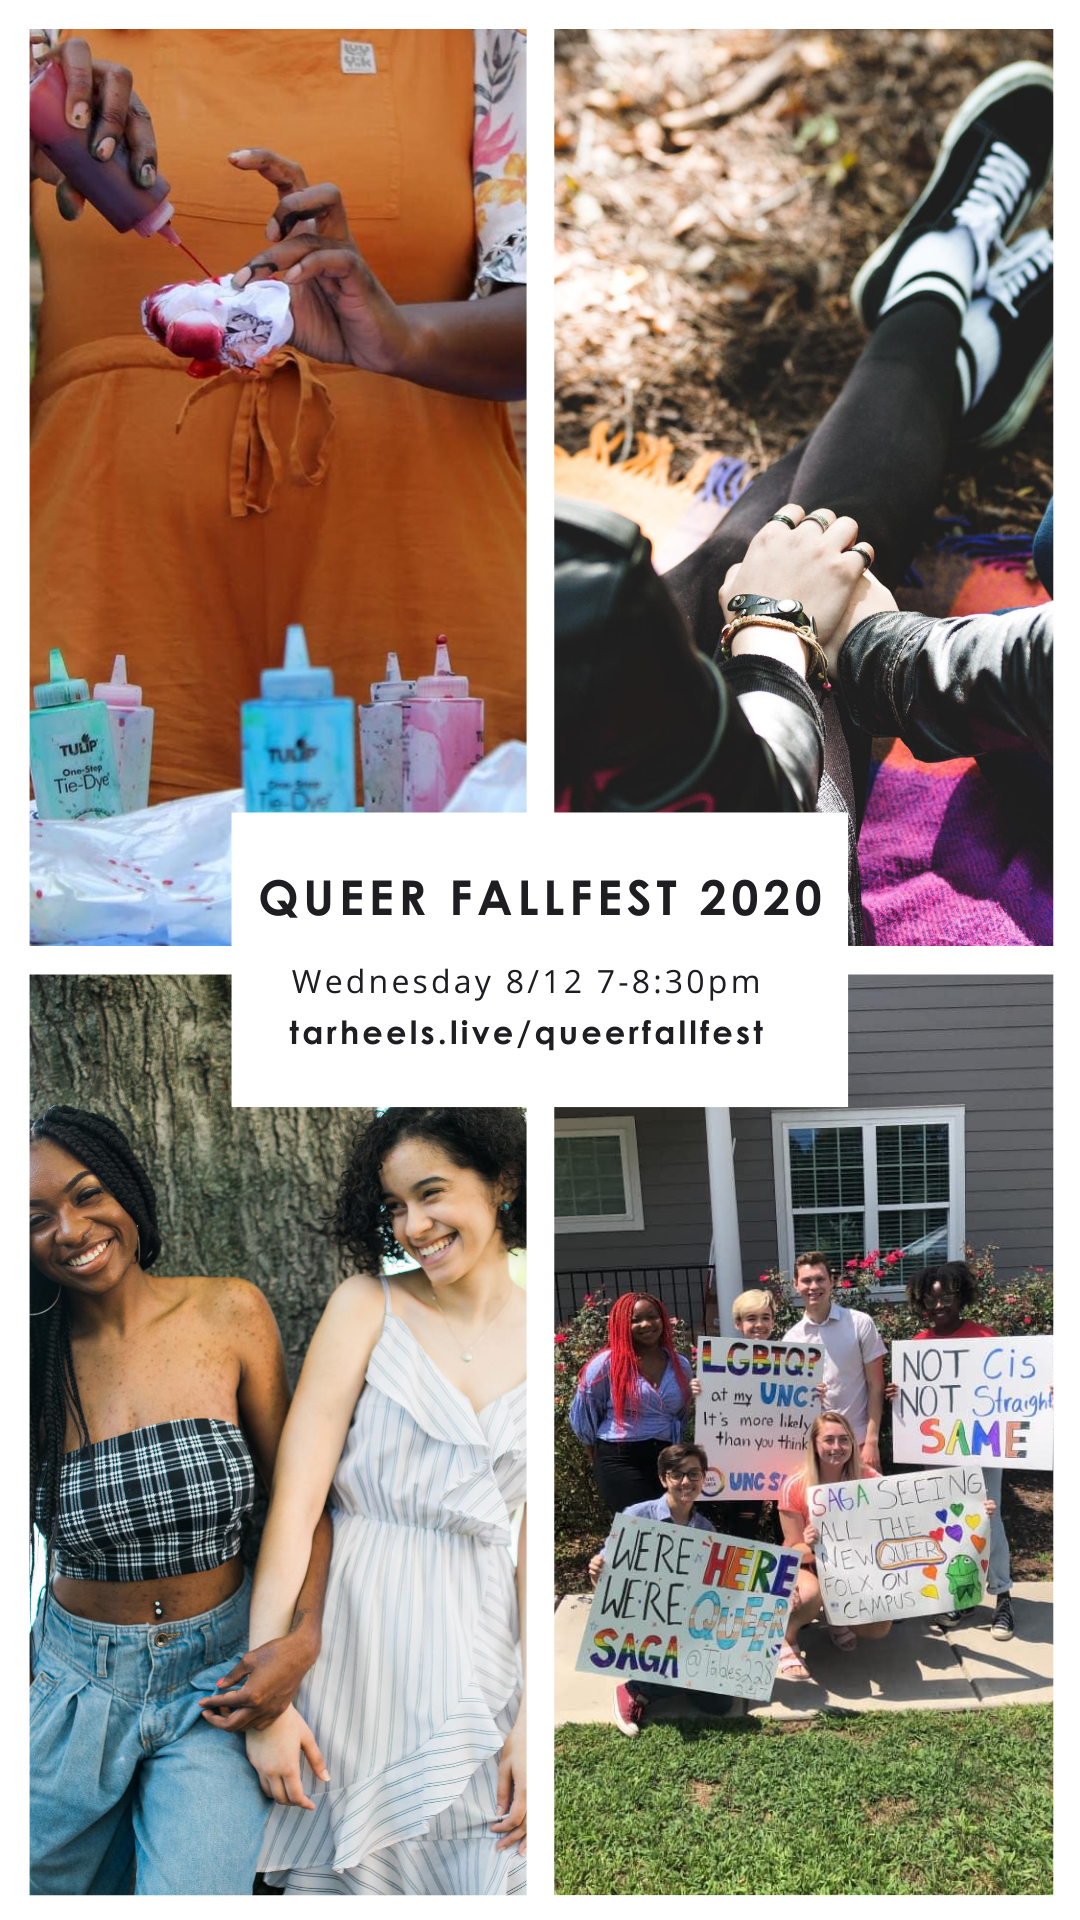 Four images of LGBTQIA+ life on and off campus in a grid with information on Queer FallFest in the center.